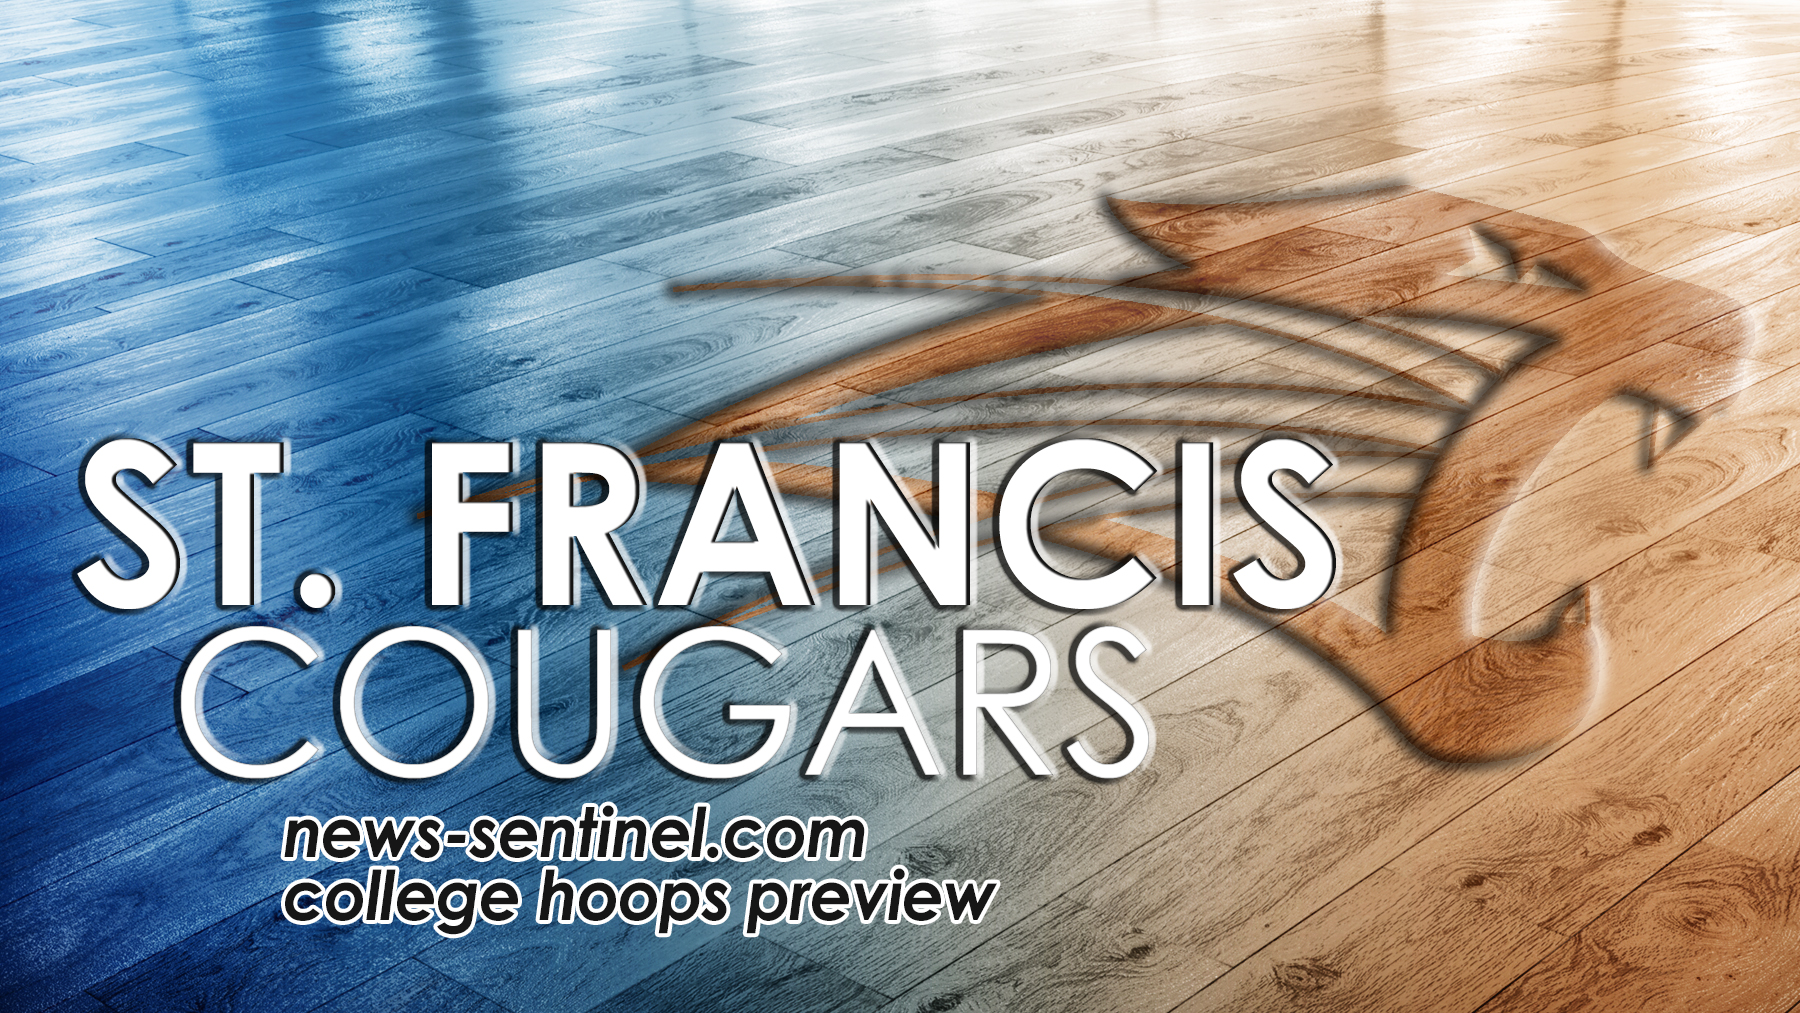 saint francis cougars personals The university of saint francis exists to challenge and engage a diverse student body by facilitating learning and personal development in an environment permeated by catholic franciscan.